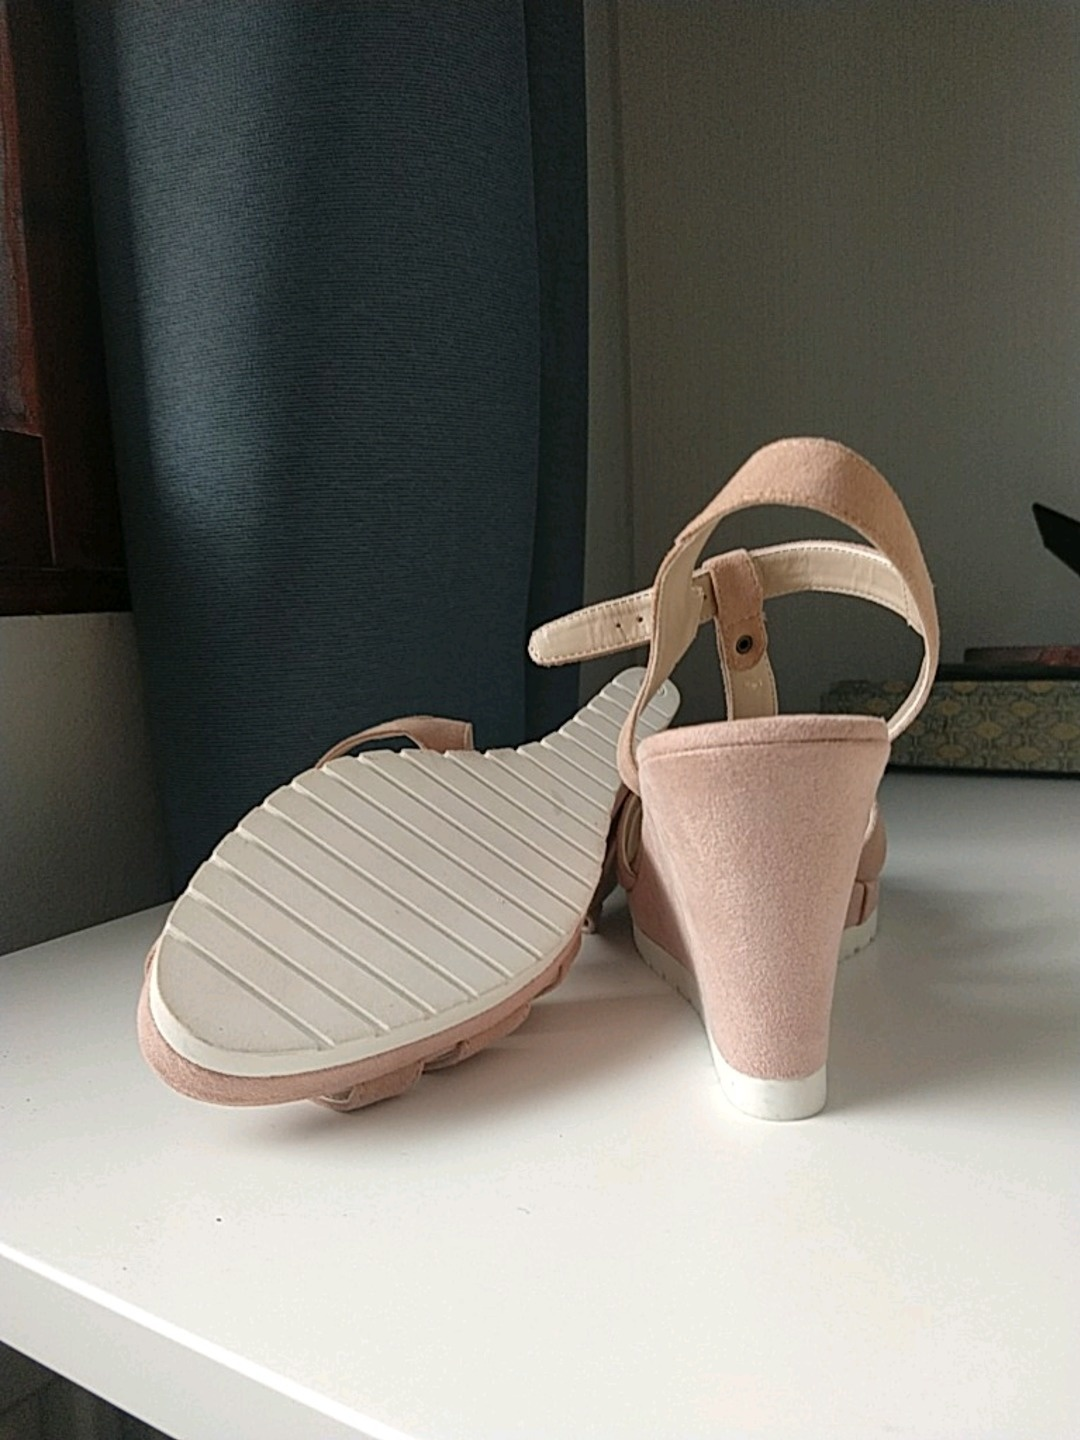 Women's sandals & slippers - PIER ONE photo 2